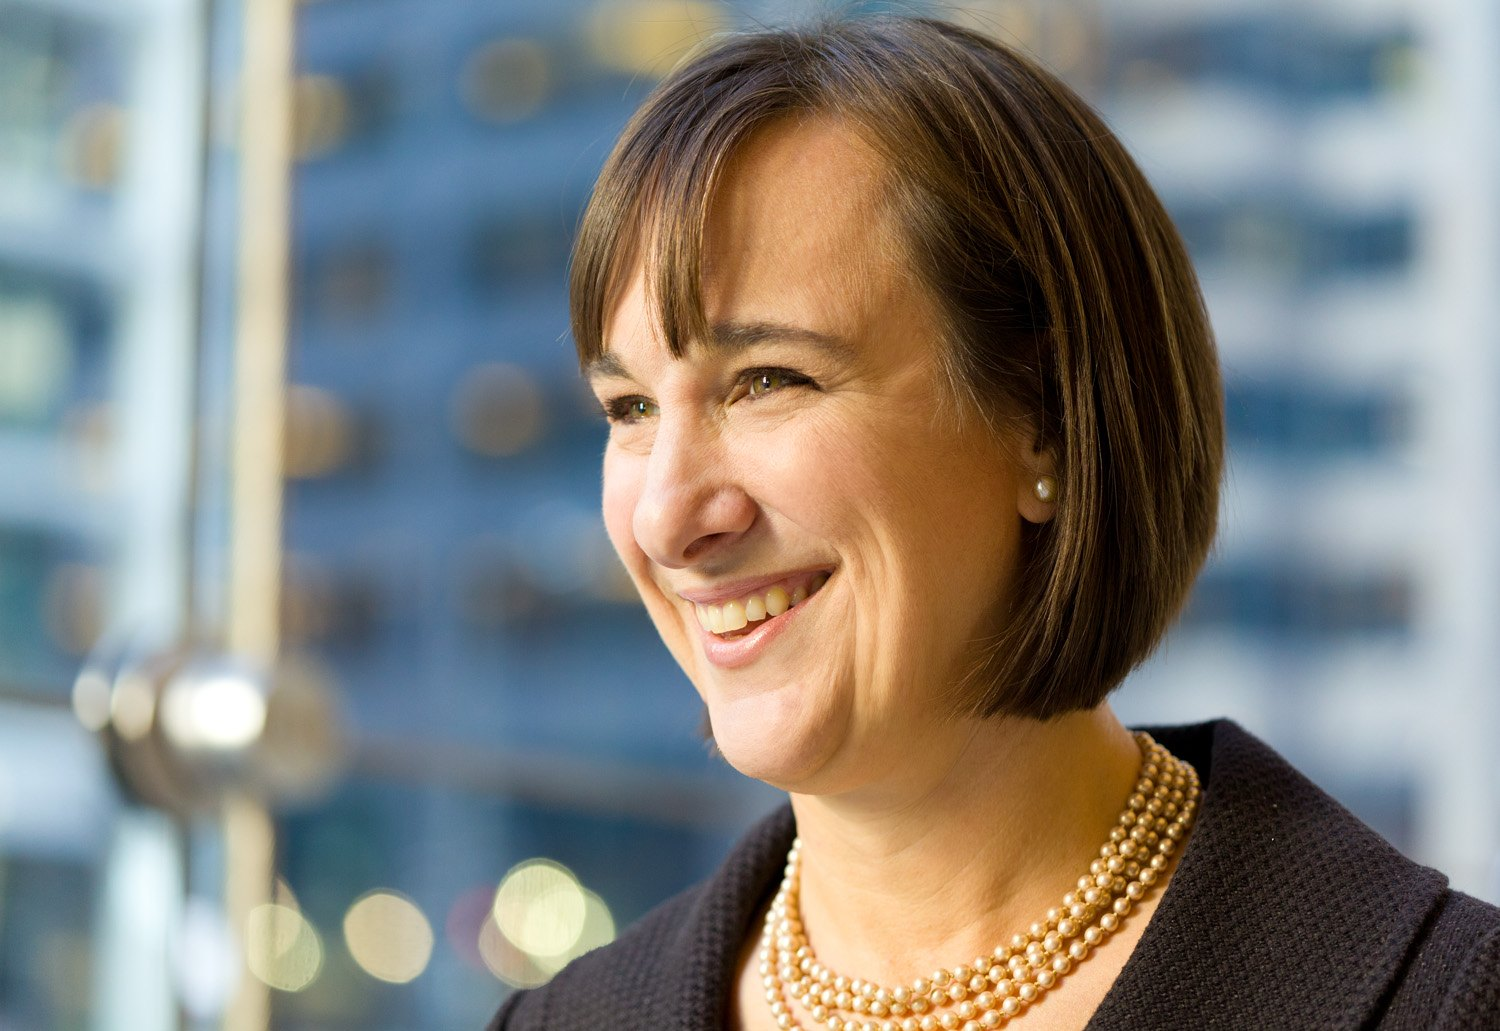 Janet Foutty Named Chairman and CEO of Deloitte Consulting